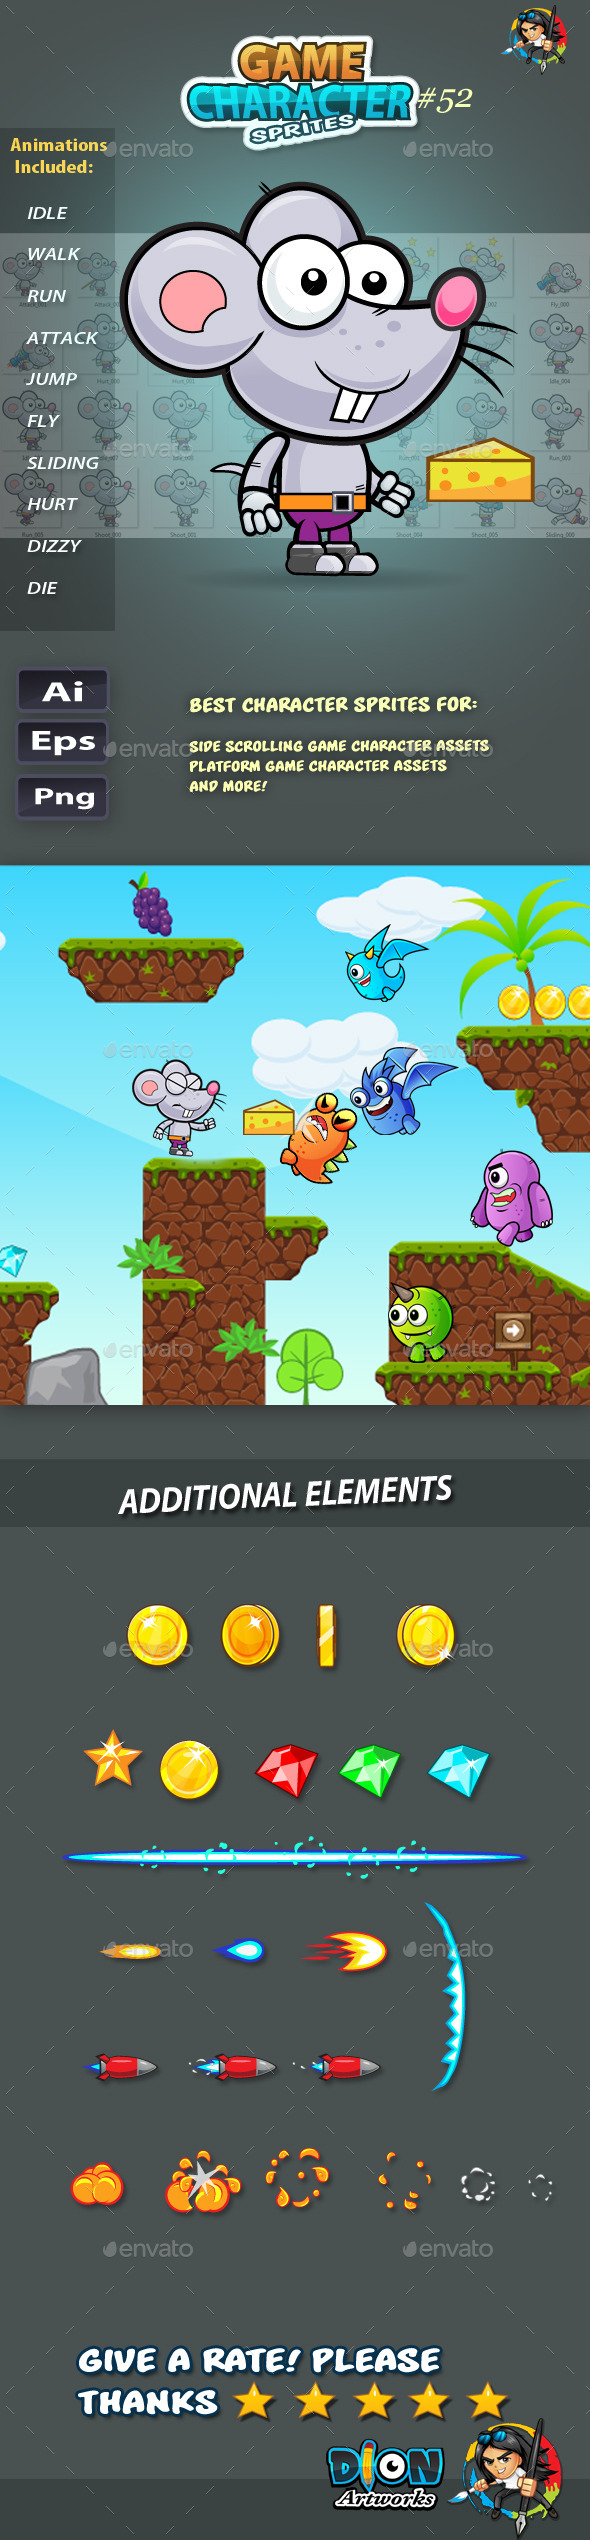 GraphicRiver Rat 2D Game Character Sprites 52 11761064